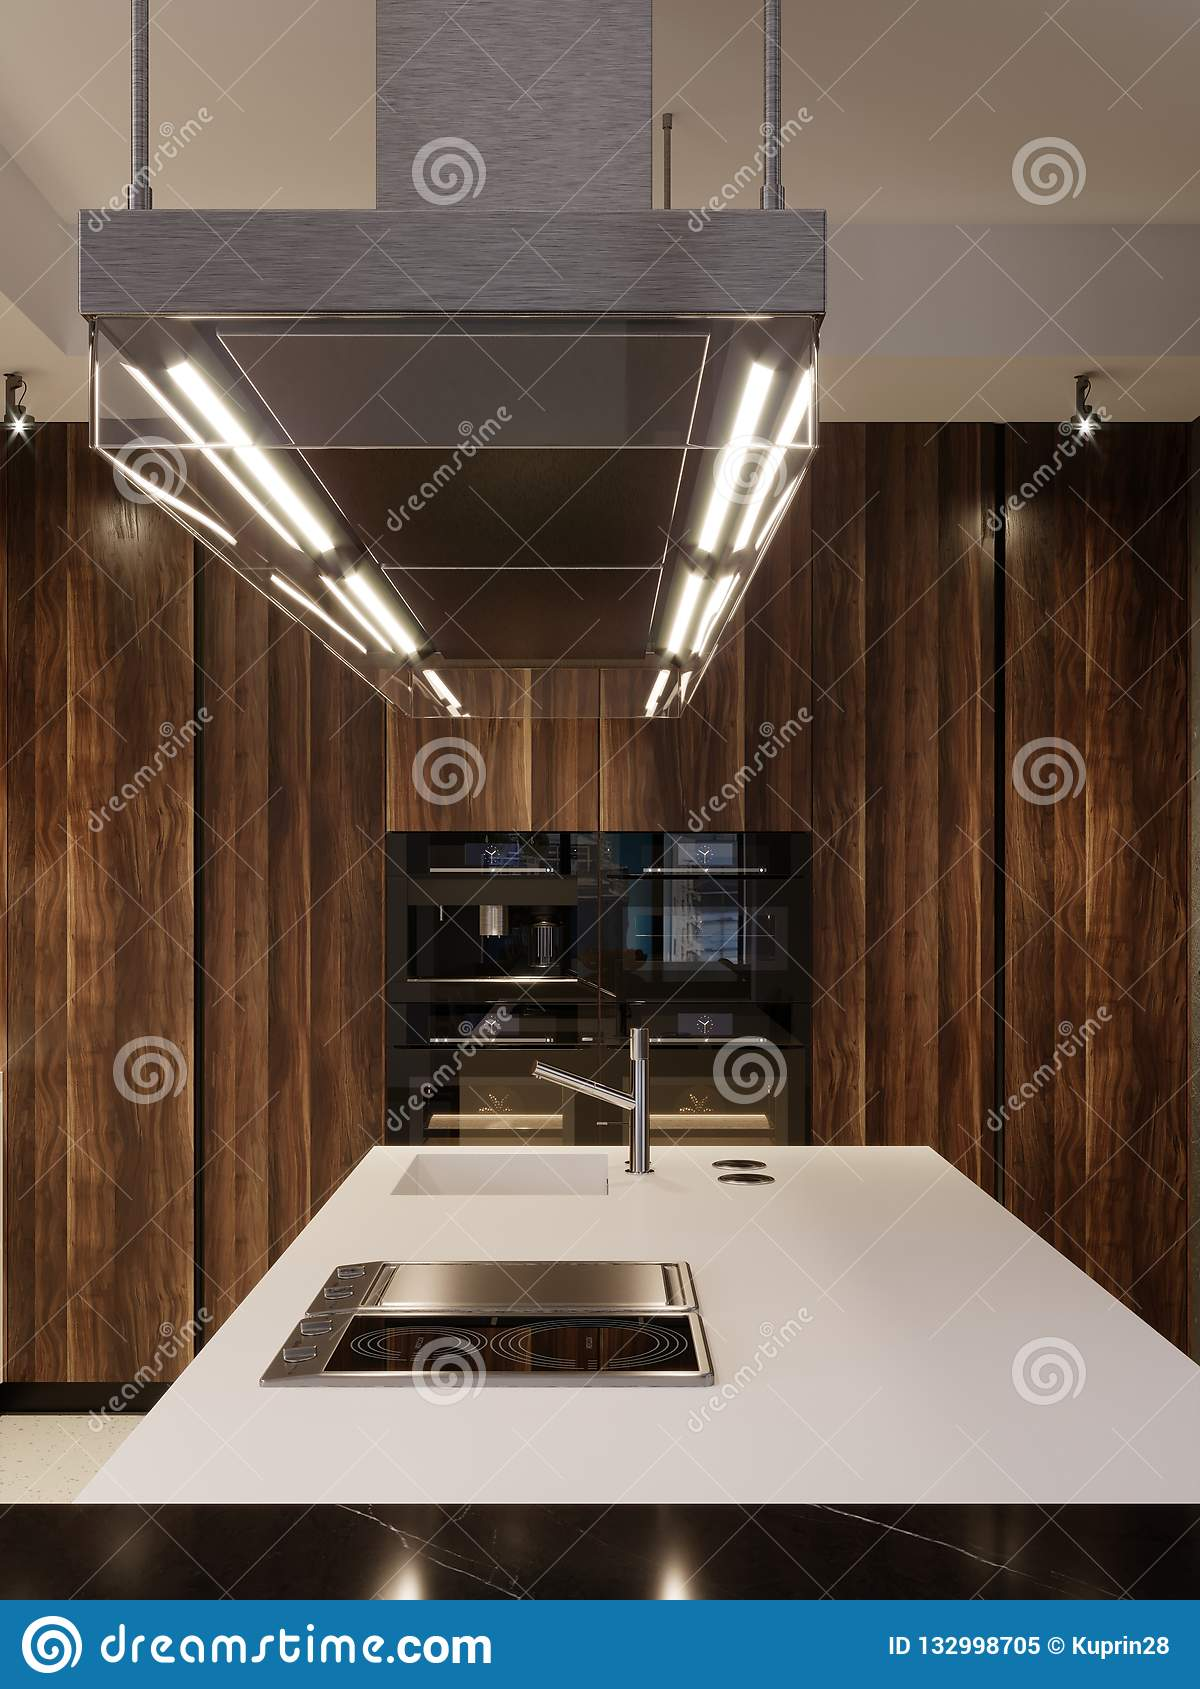 Kitchen Design Hood And Built In Kitchen Appliances In A Modern Kitchen Stock Illustration Illustration Of Contemporary Indoors 132998705